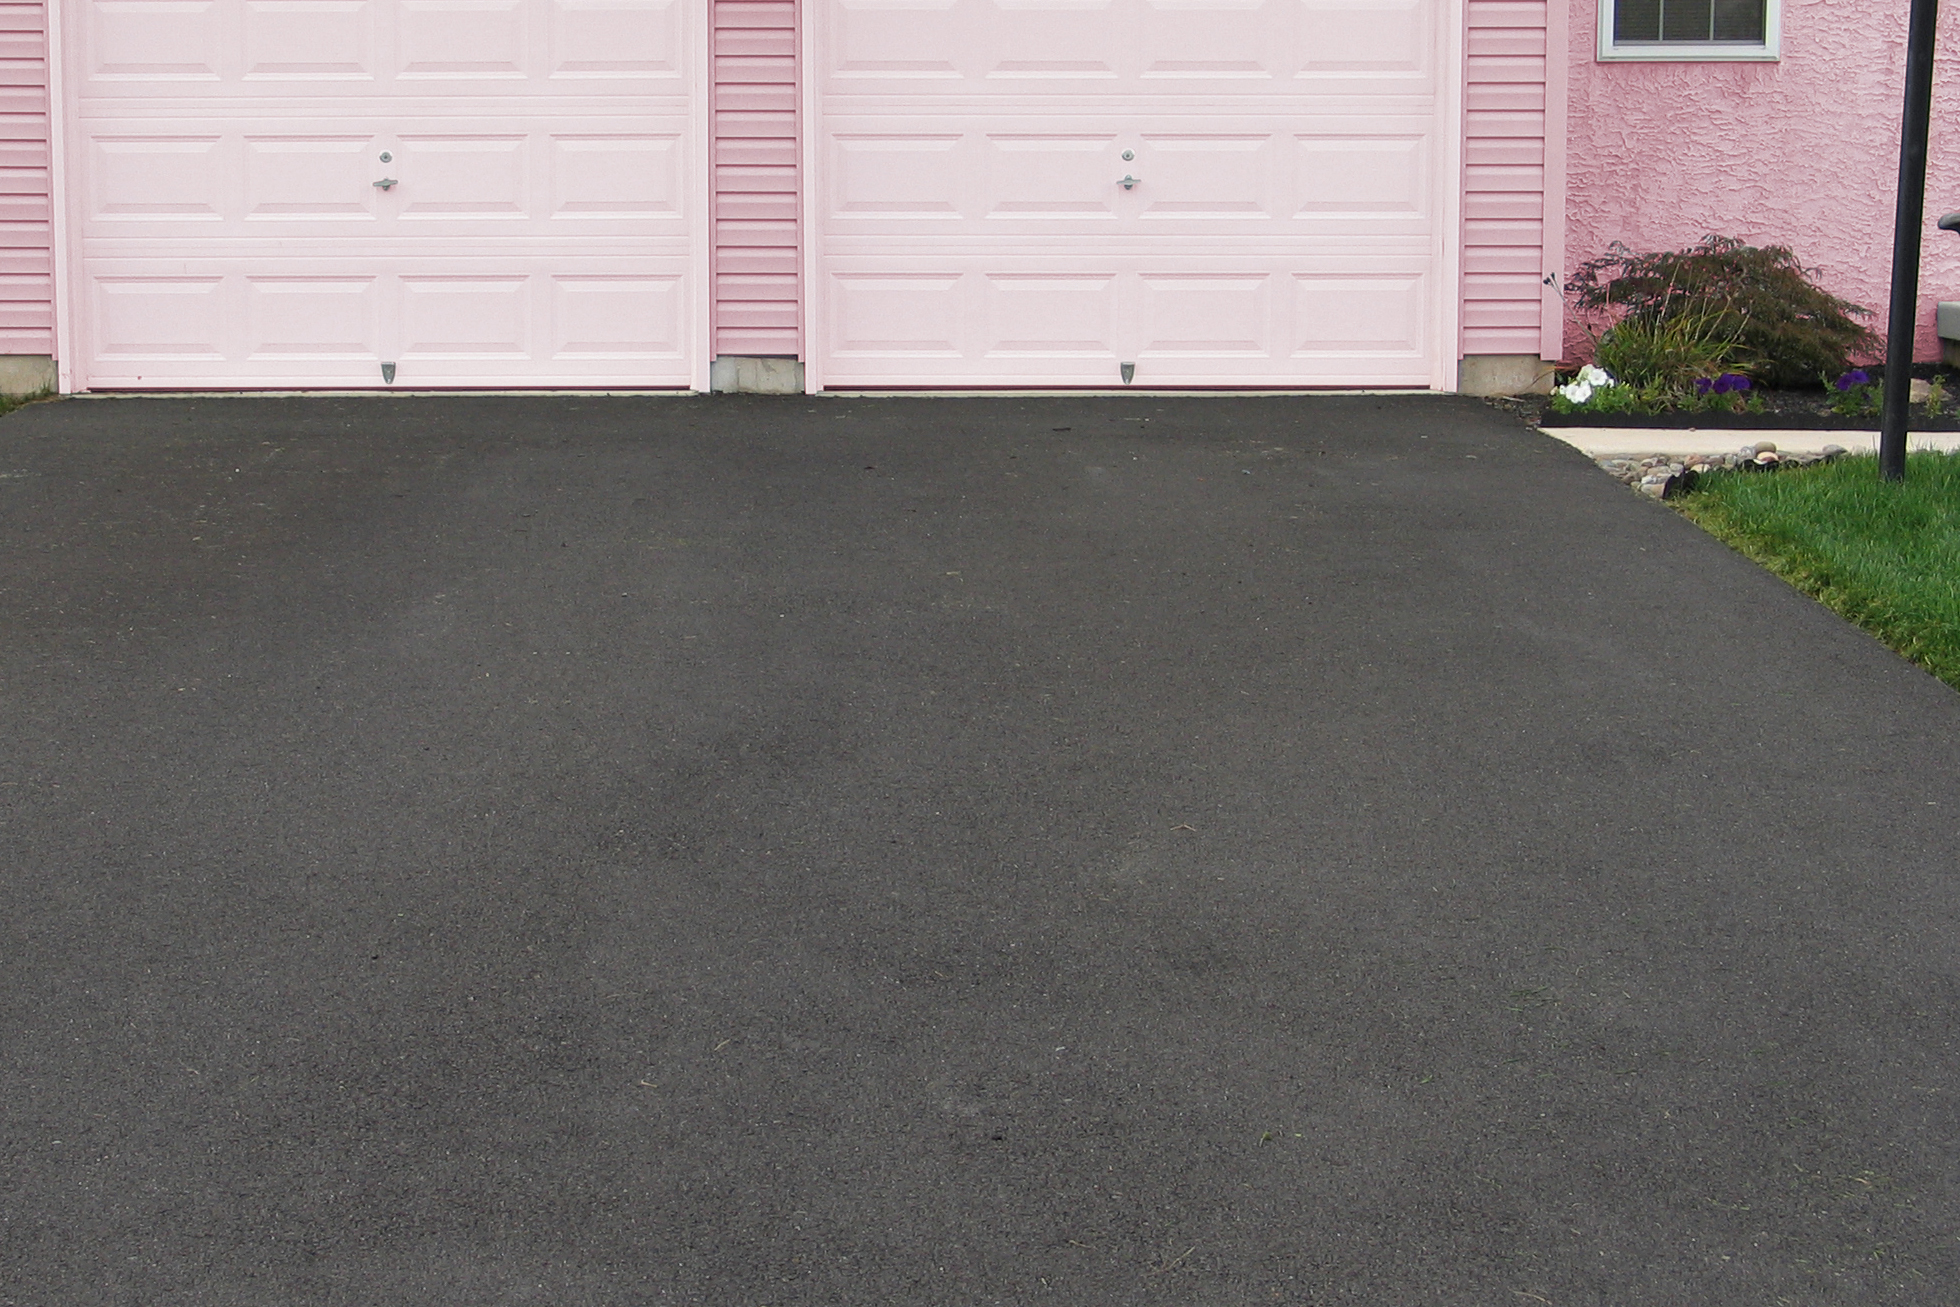 Sealed asphalt driveway at pink house